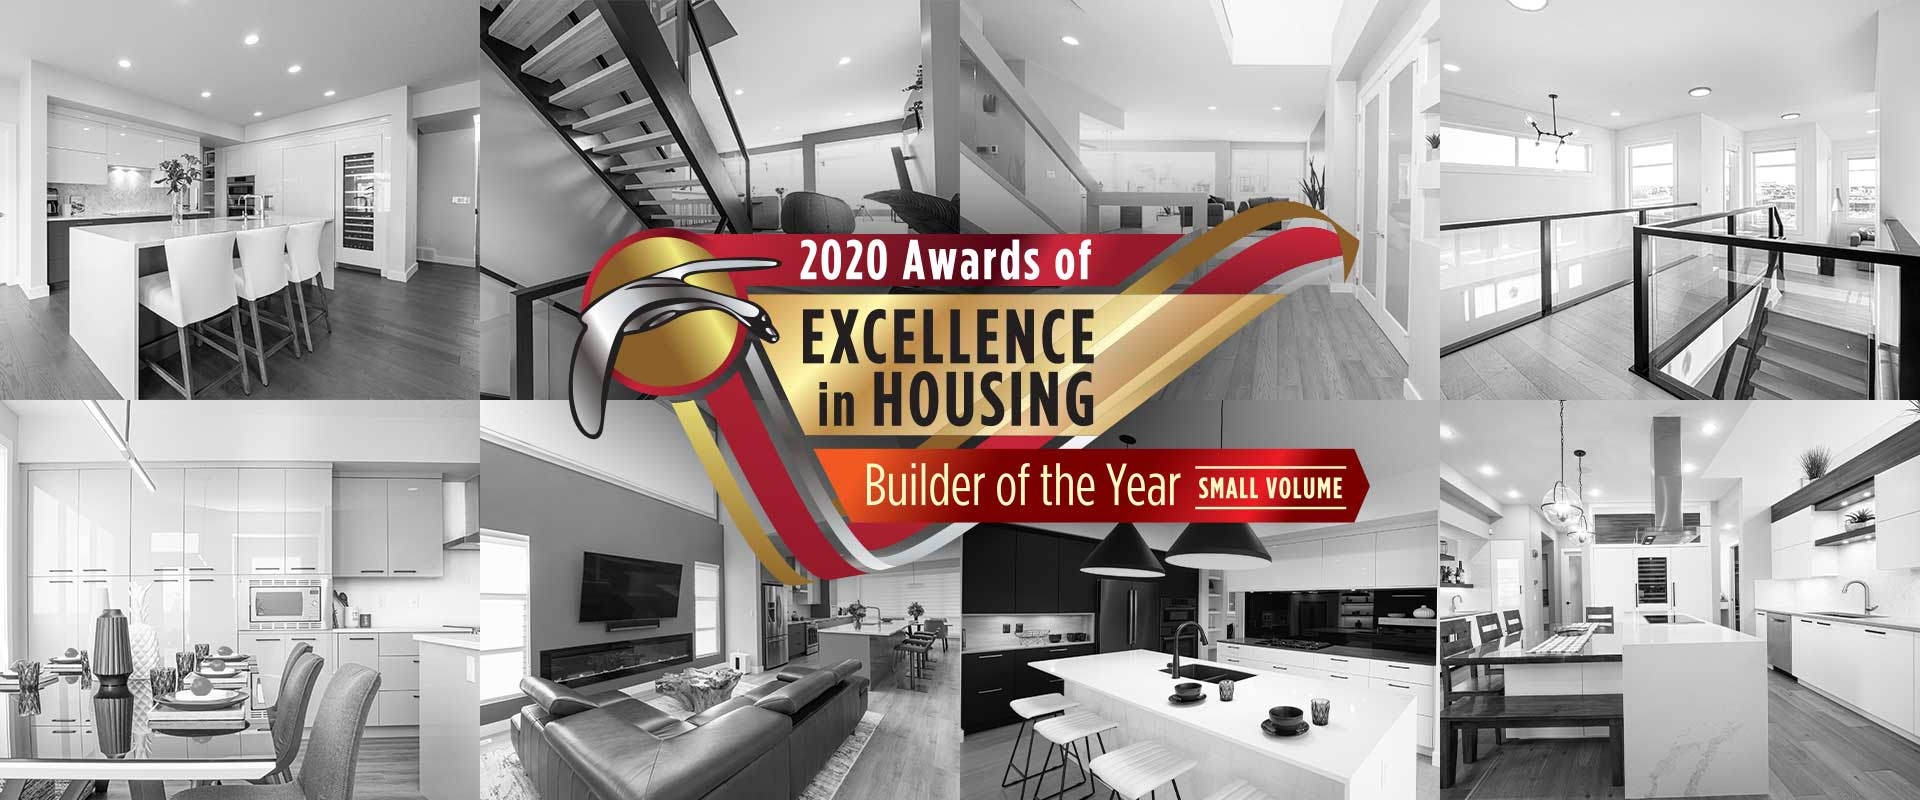 Home-builder-awards-builder-of-the-year-2020_Canadian_Home_Builders_Association_Award_Winners